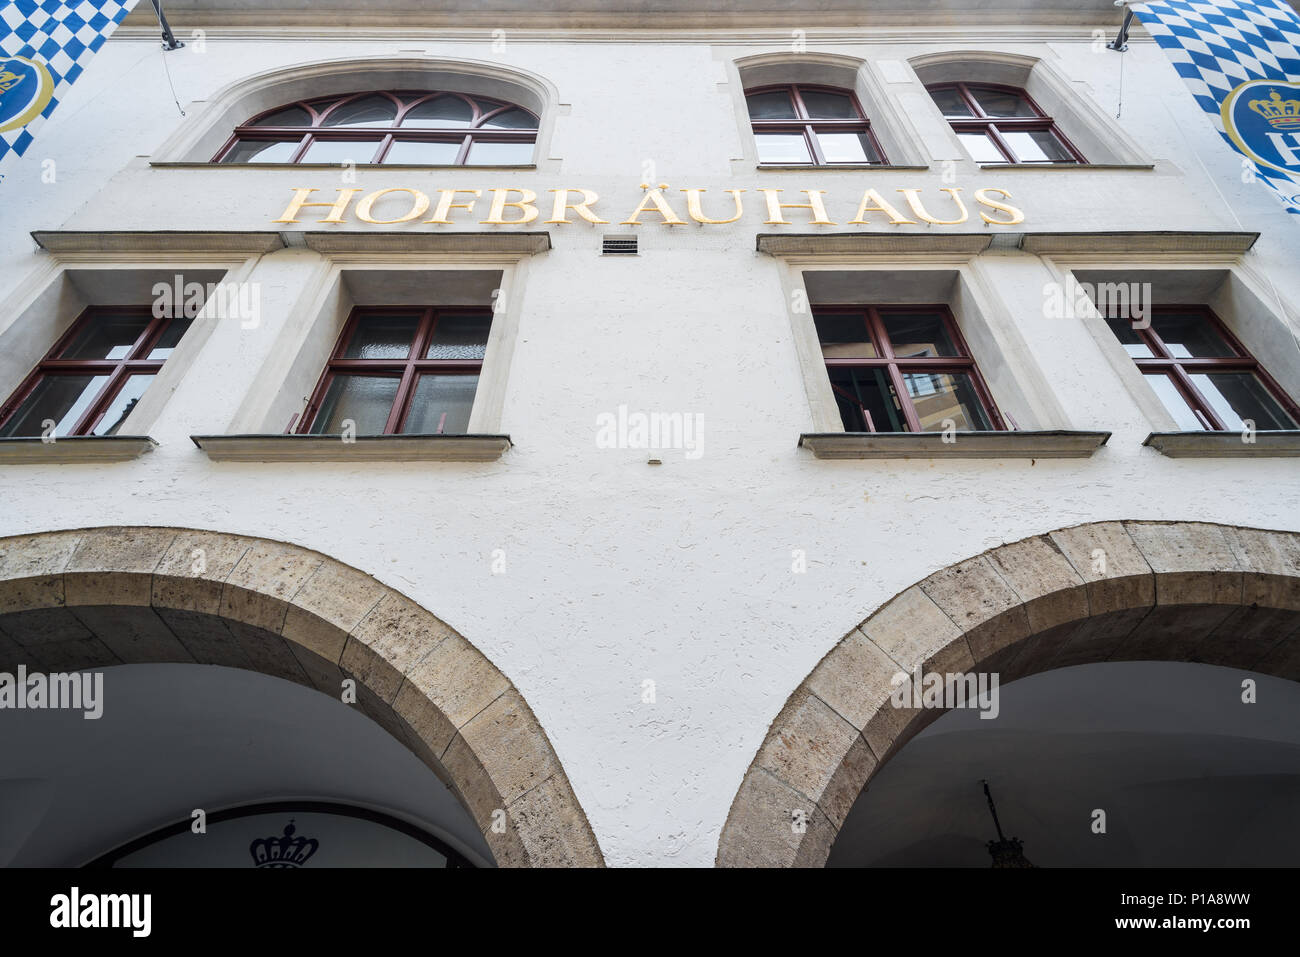 Muenchen, Germany, lettering and facade of Hofbraeuhaus am Platzl - Stock Image